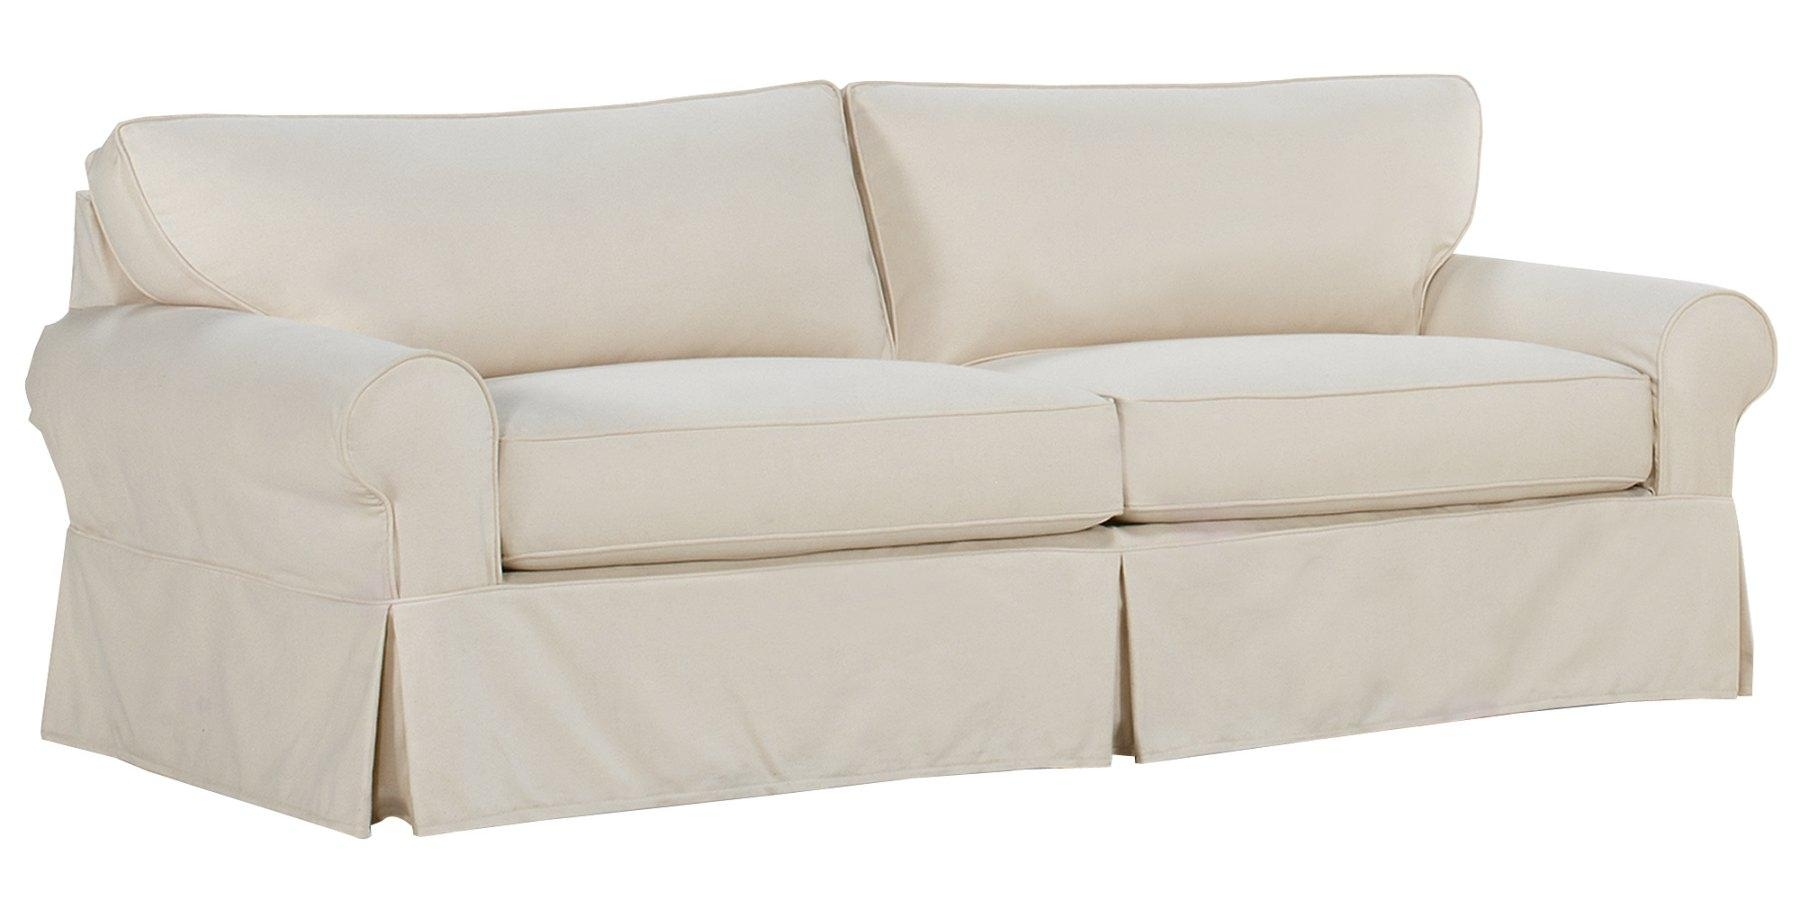 Sofas: Oversized Sofas | Sectional Couch For Sale | Oversized Sofa Regarding Large Sofa Chairs (Image 19 of 20)